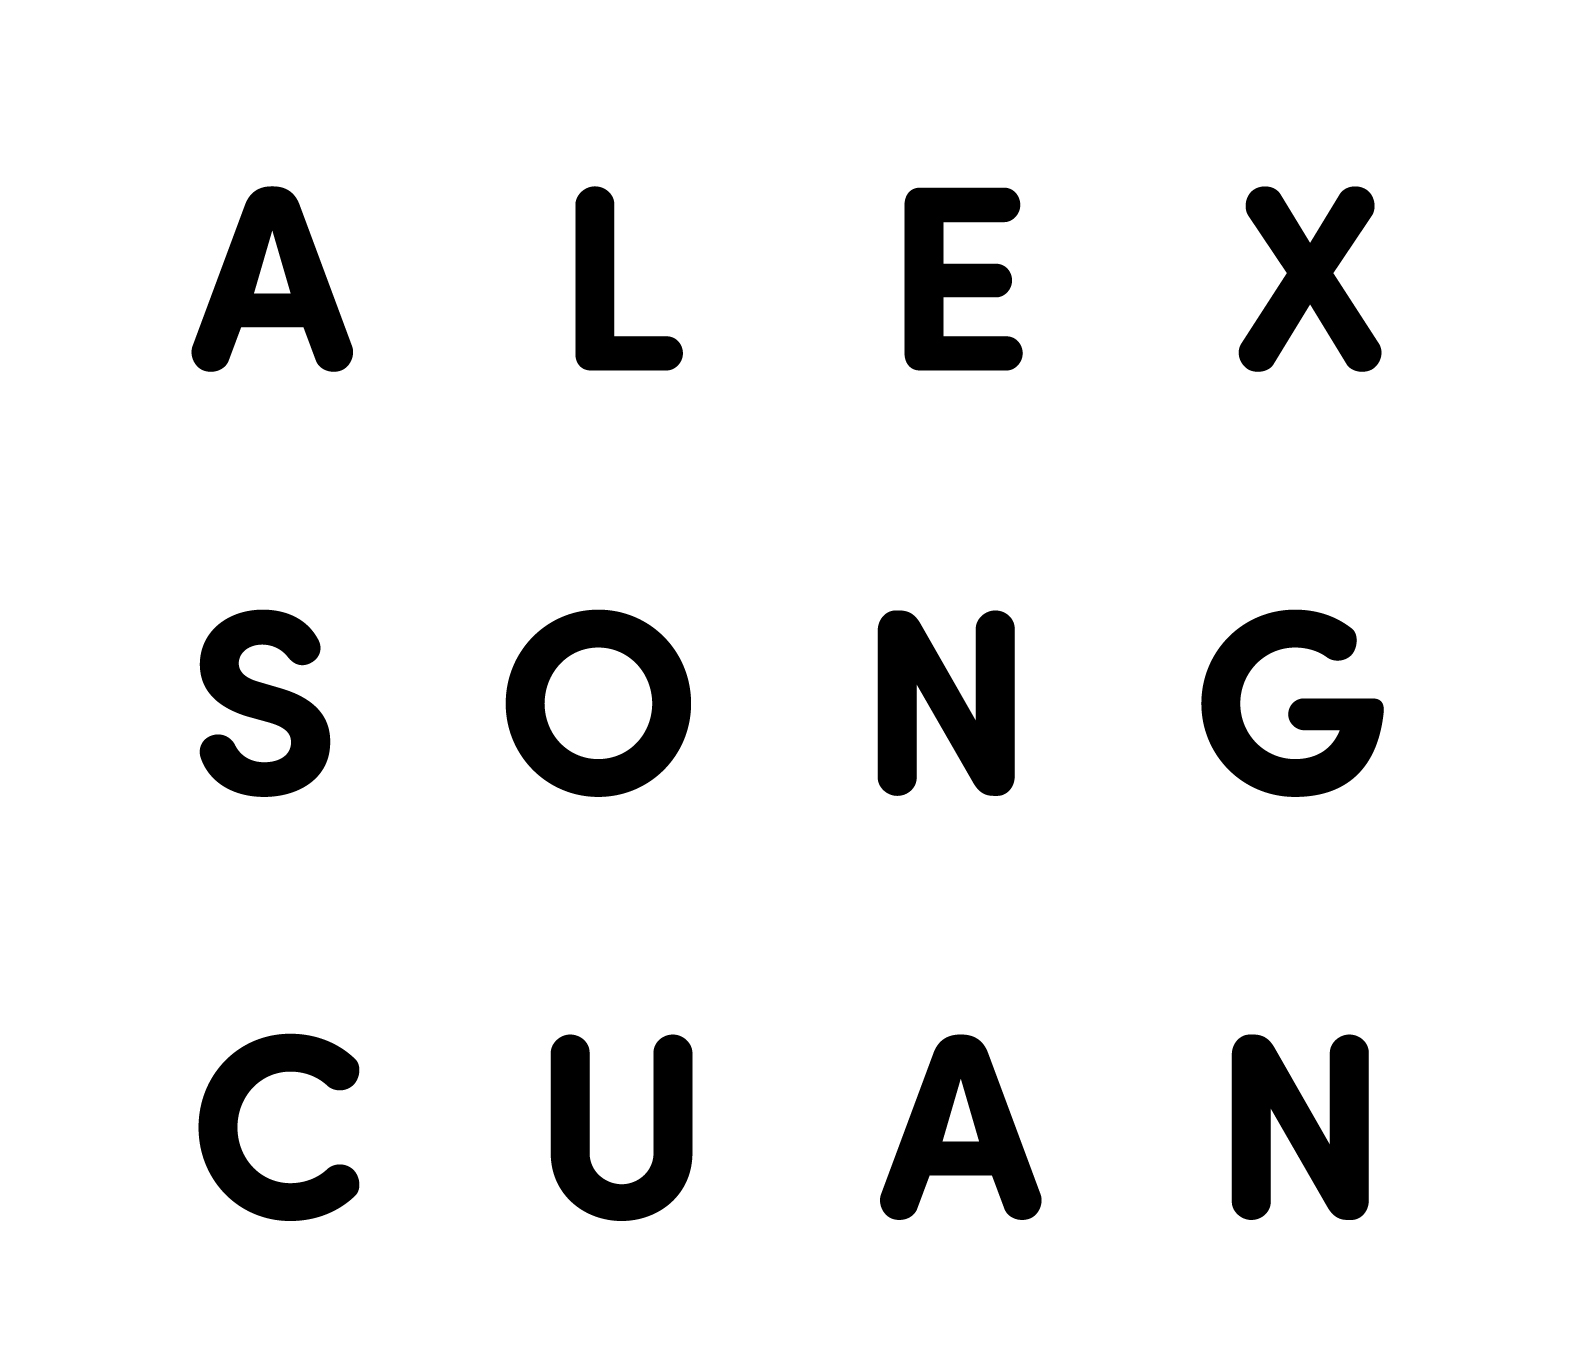 ALEX SONGCUAN